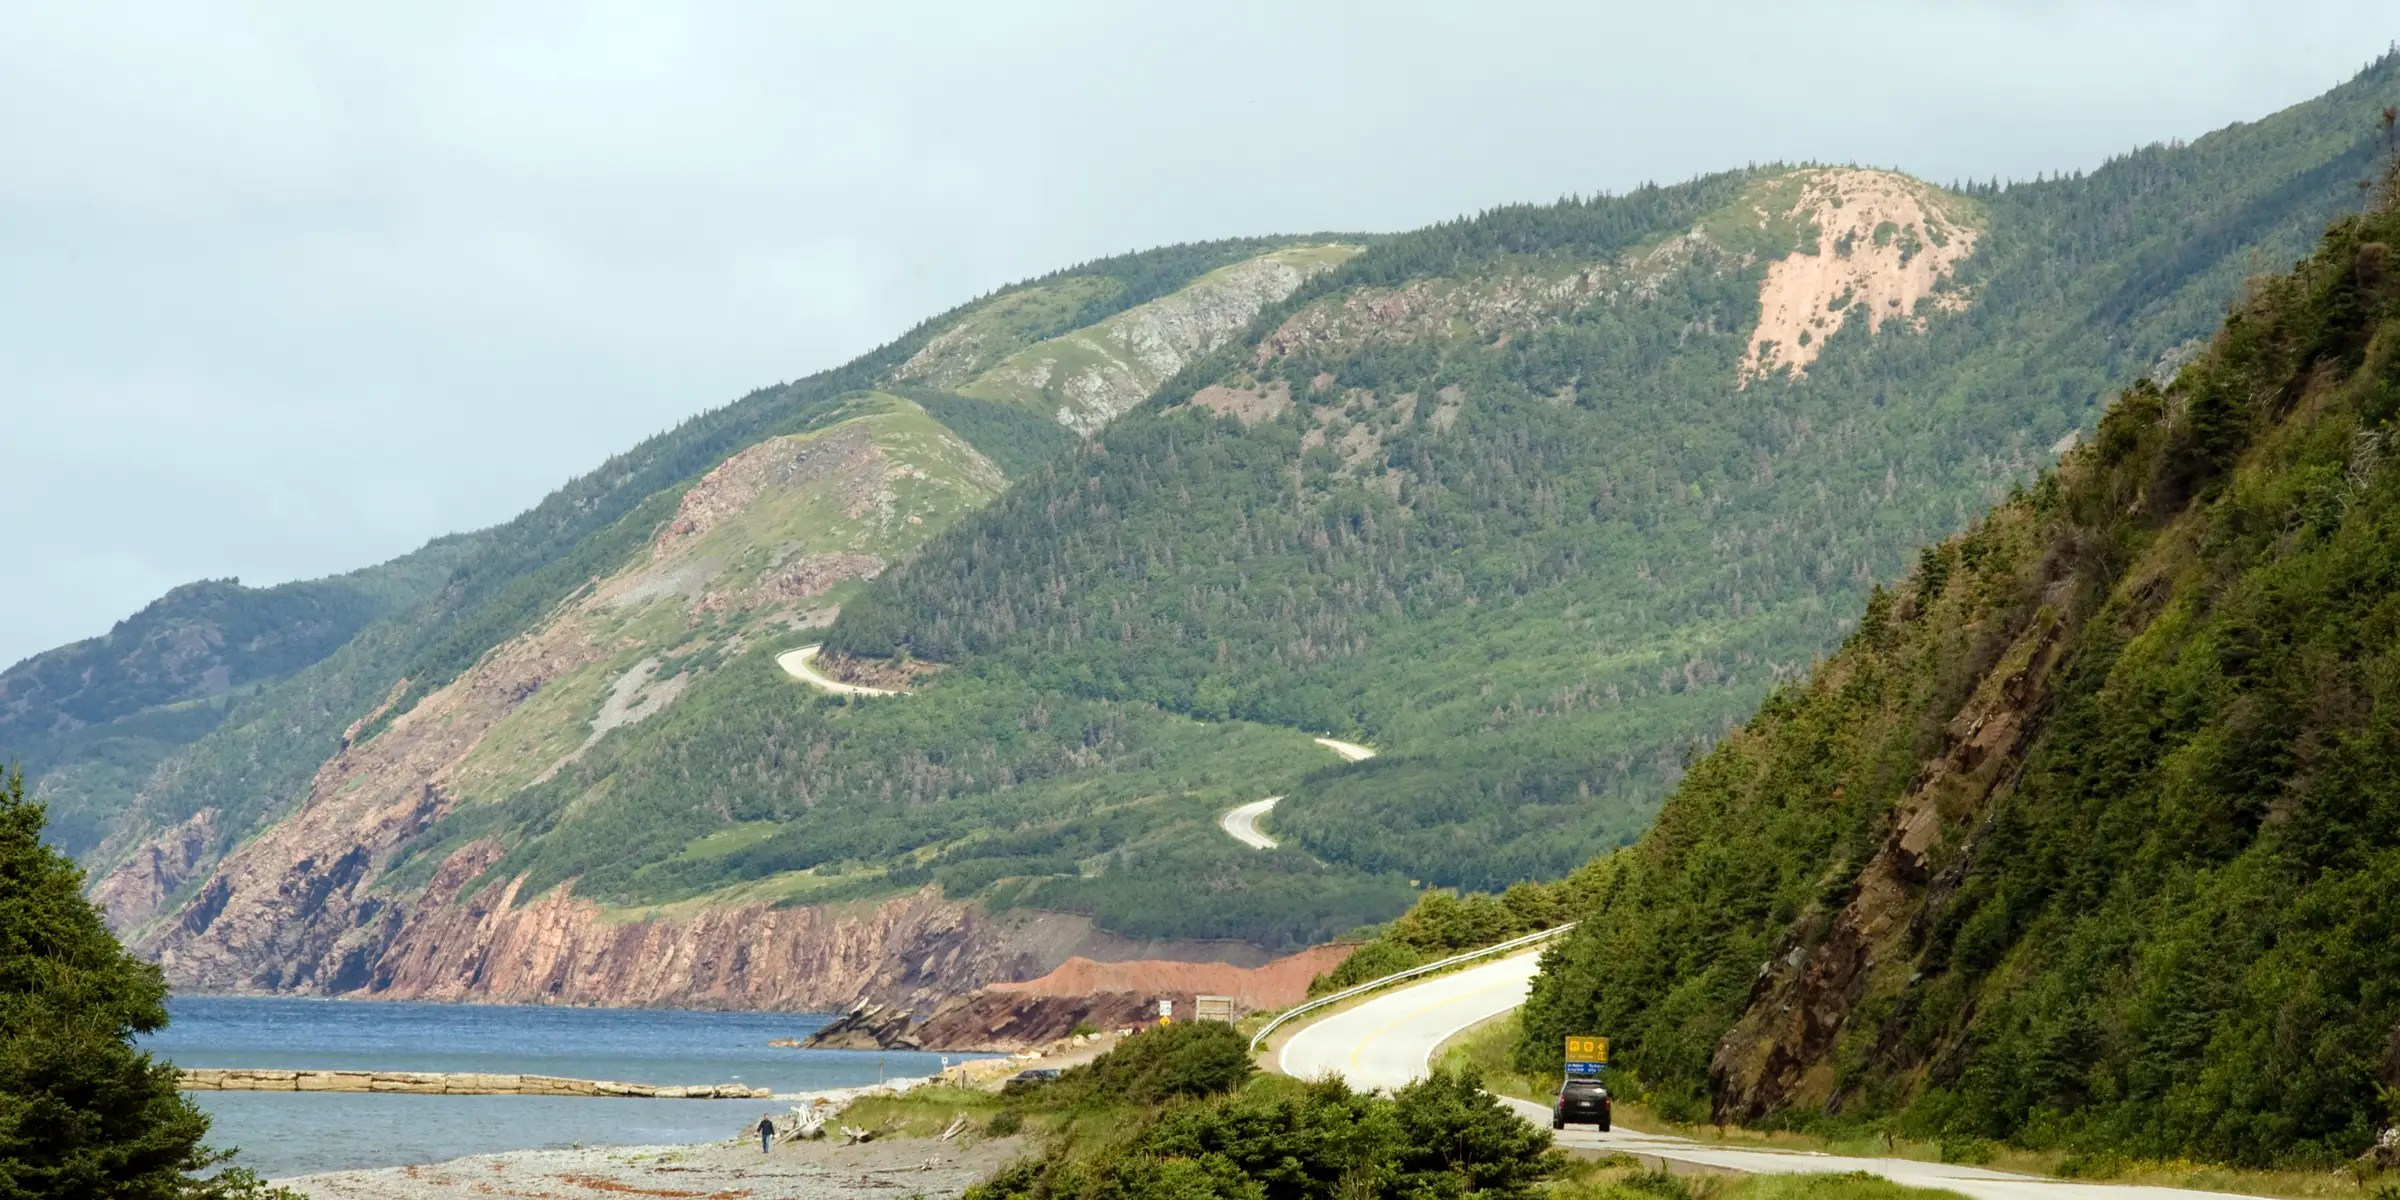 Cabot Trail in Nova Scotia is one of the most scenic drives in Canada, winding around the greater part of Cape Breton Island and offering views of both the woods and the ocean. Make sure to glance at the water every once in a while — you might spot a pod of whales swimming past.